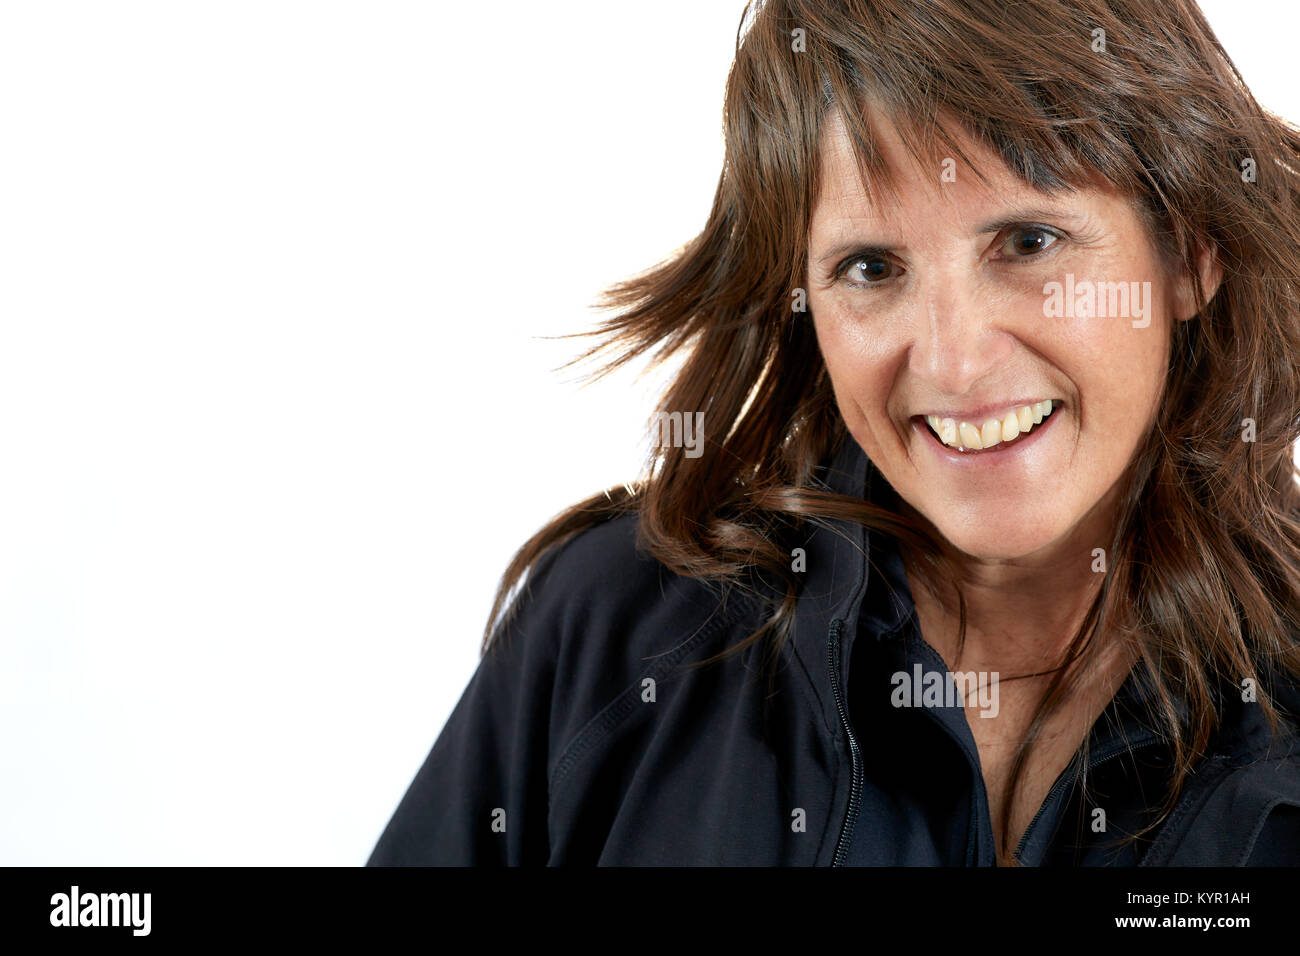 Attractive Middle aged woman with brown layered hair smiling isolated on white - Stock Image